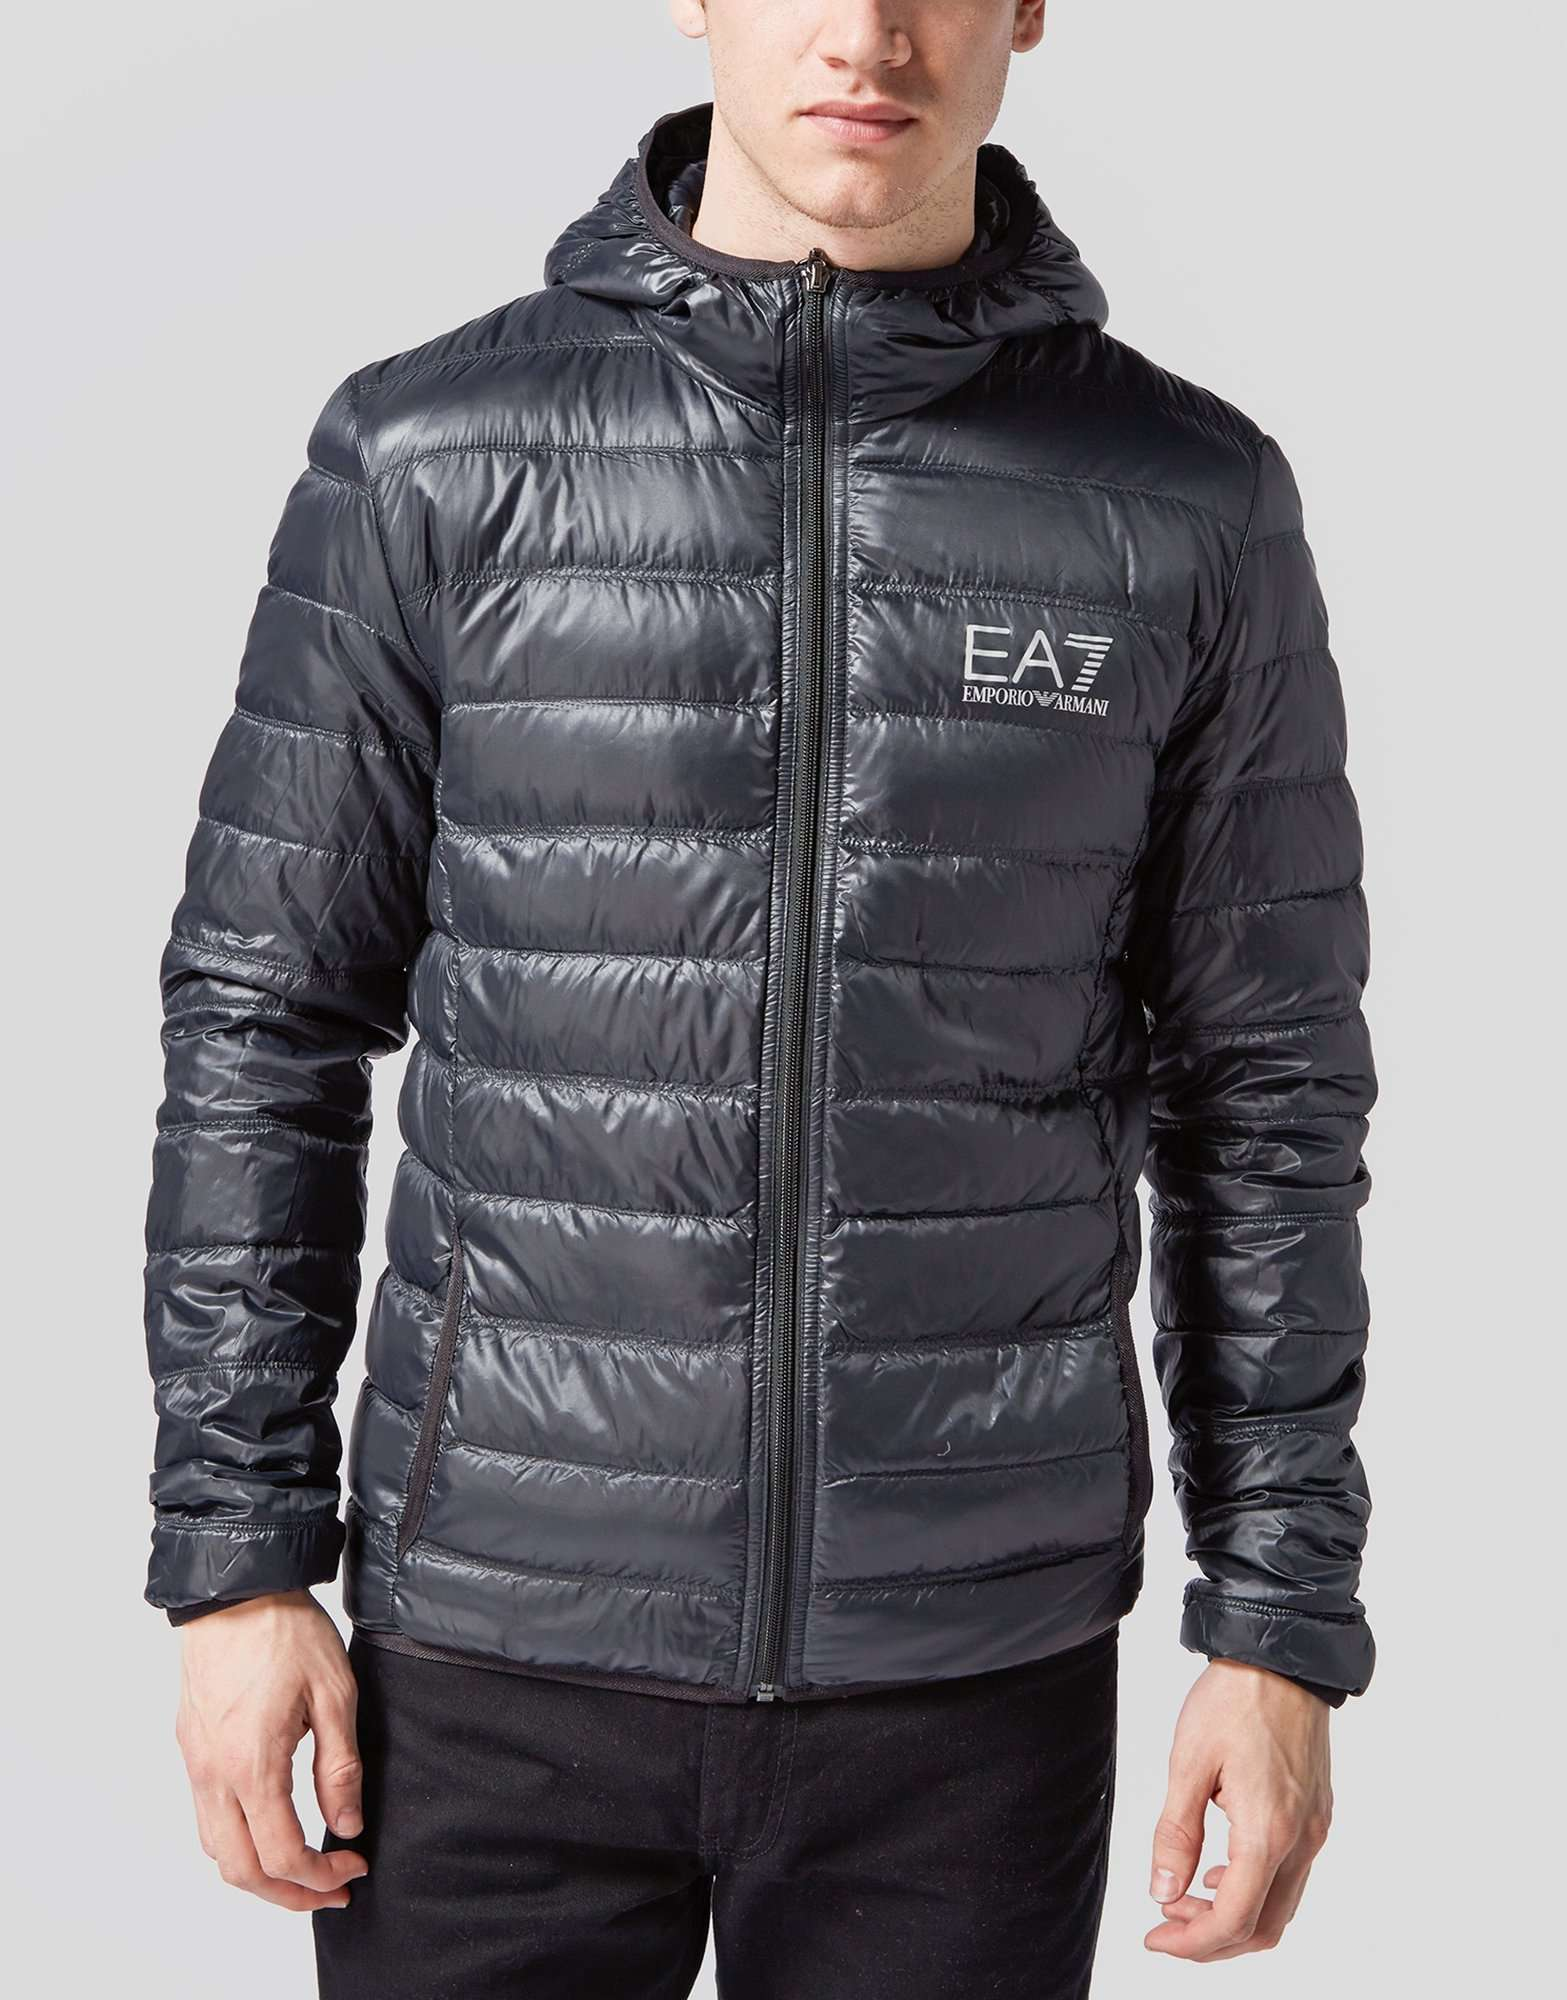 Emporio Armani EA7 Bubble Hooded Jacket | scotts Menswear